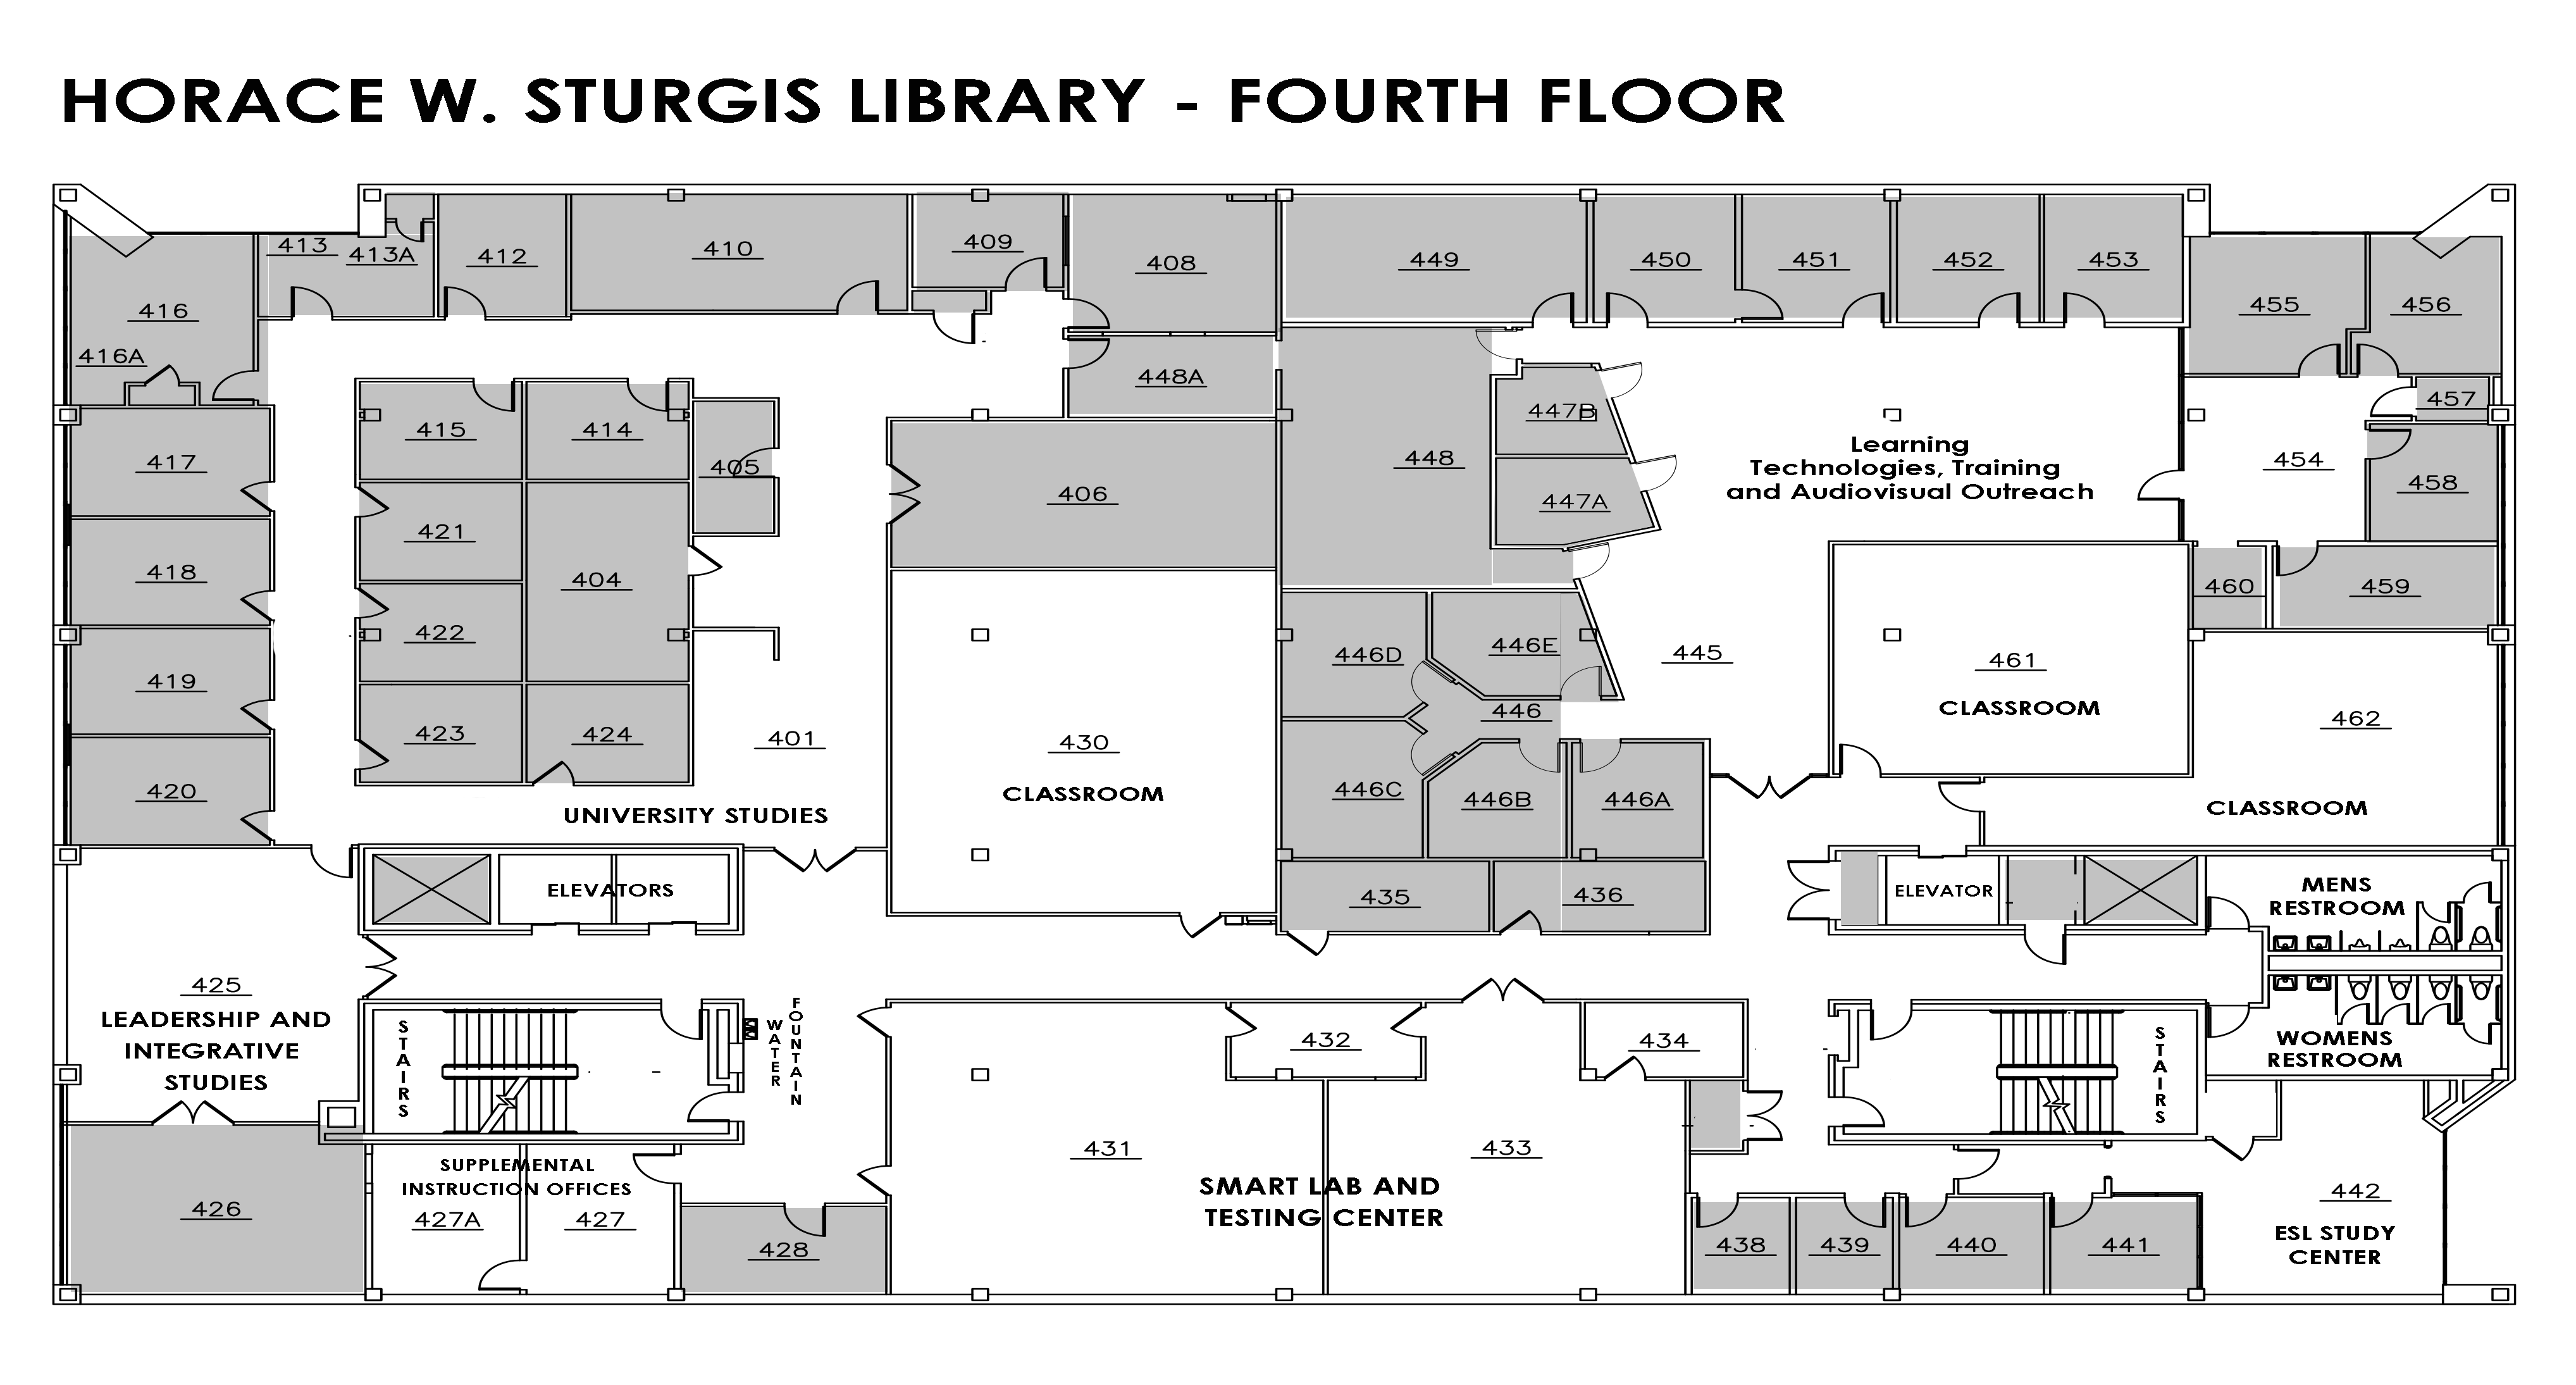 Sturgis Library Fourth Floor